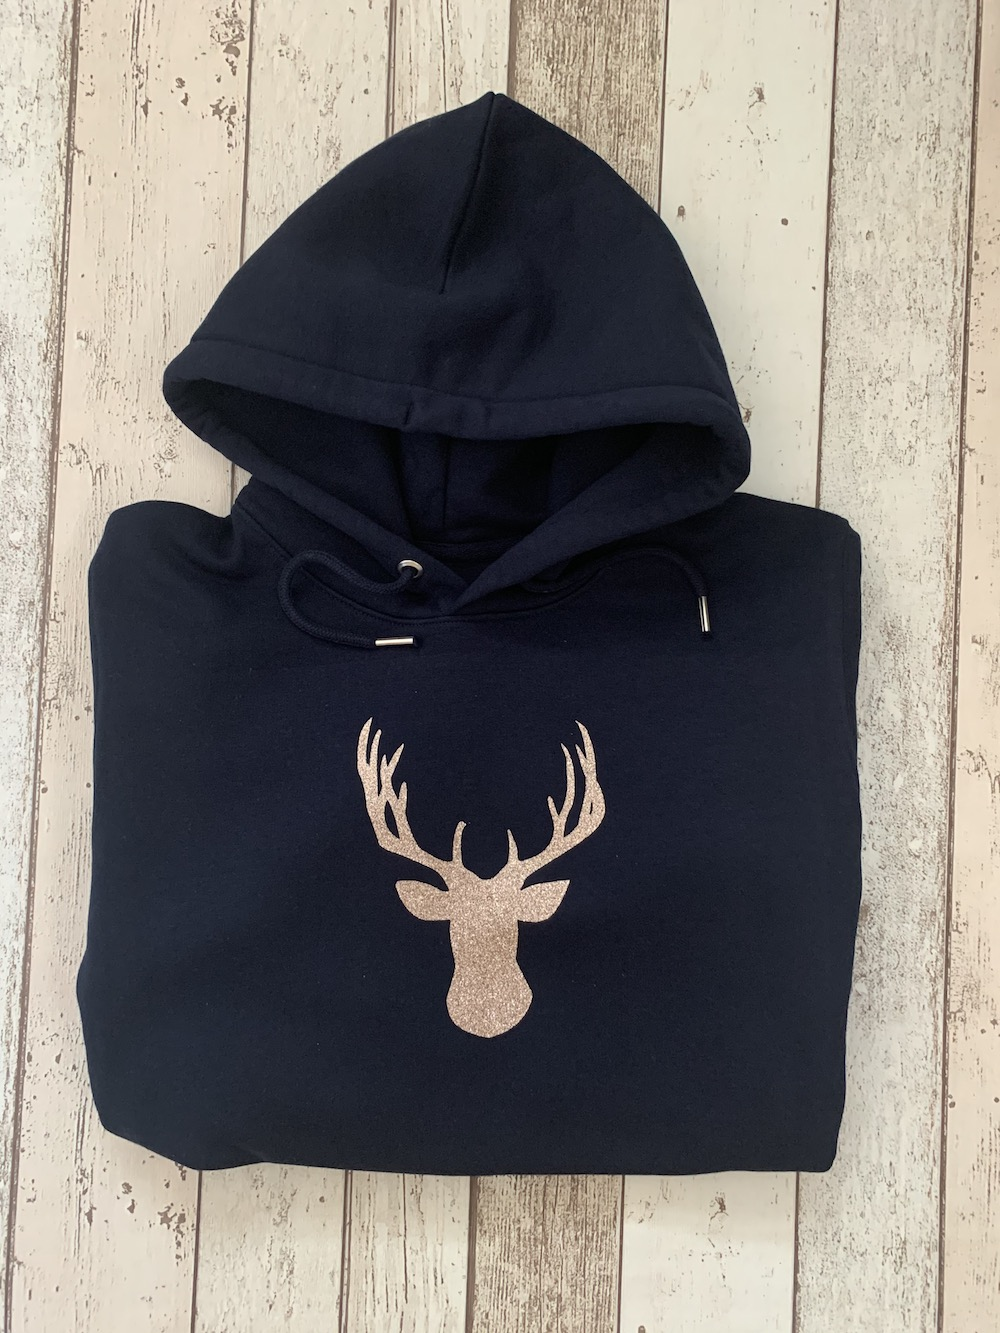 Womens Hooded Jumper – Navy With Rose Gold Stag – Size Small